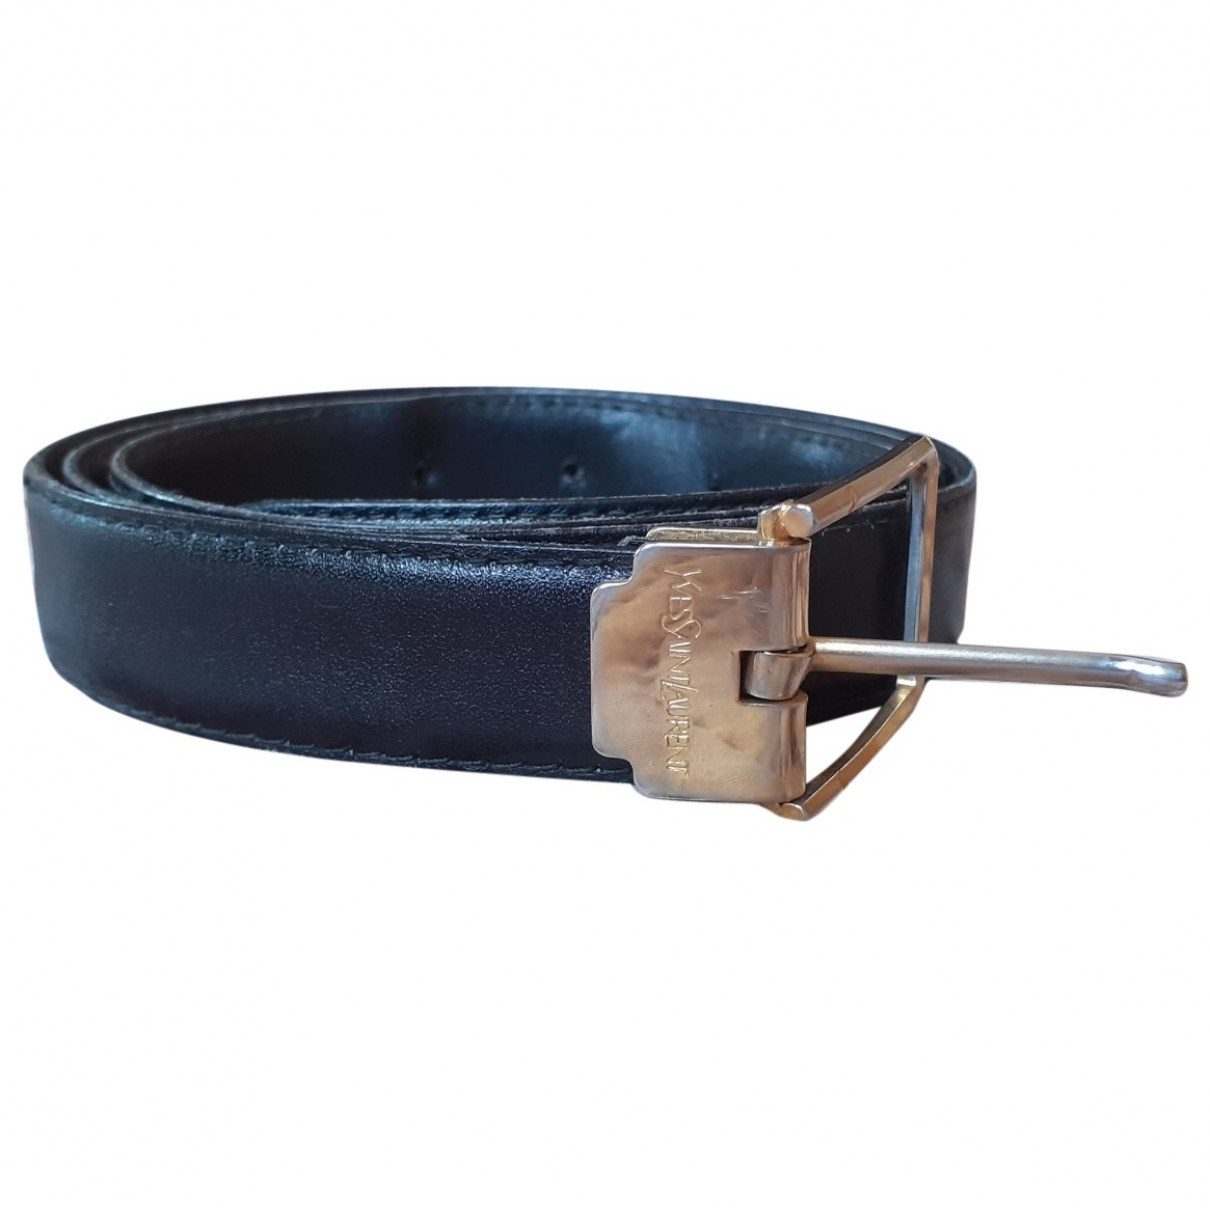 Yves Saint Laurent \N Black Leather belt for Men 100 cm